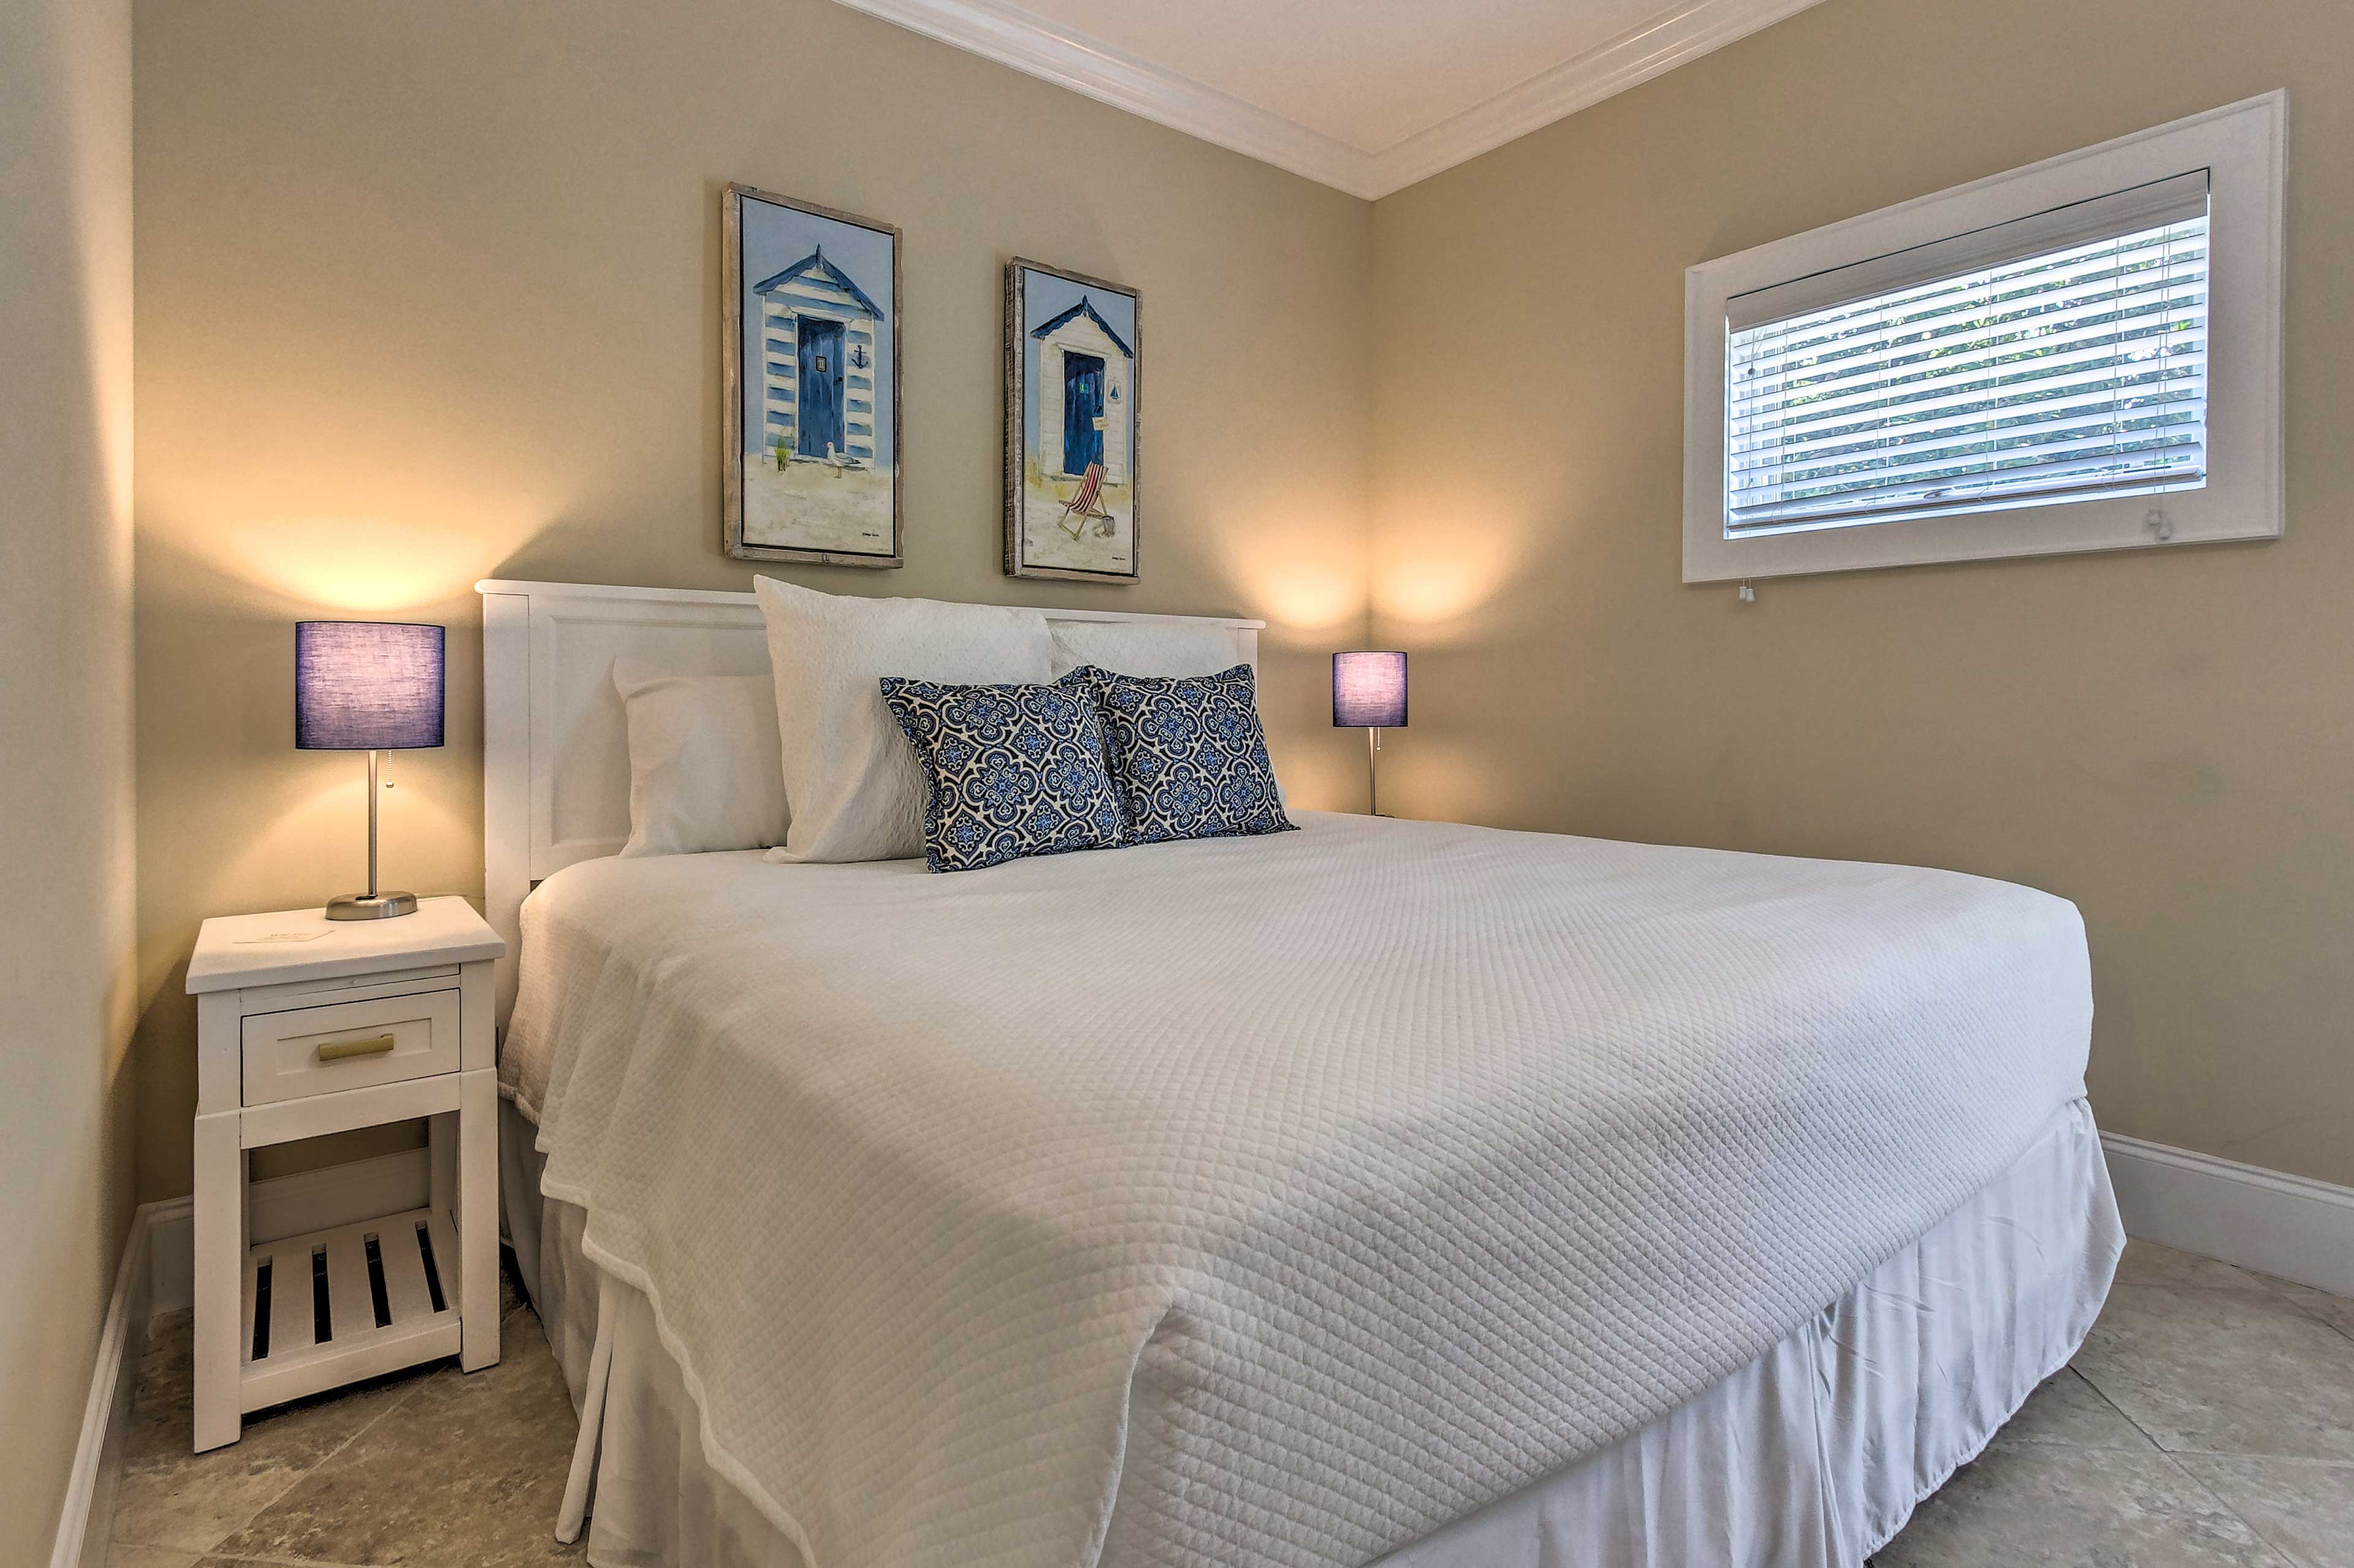 The fourth and final bedroom has a king bed and a sleeper sofa!